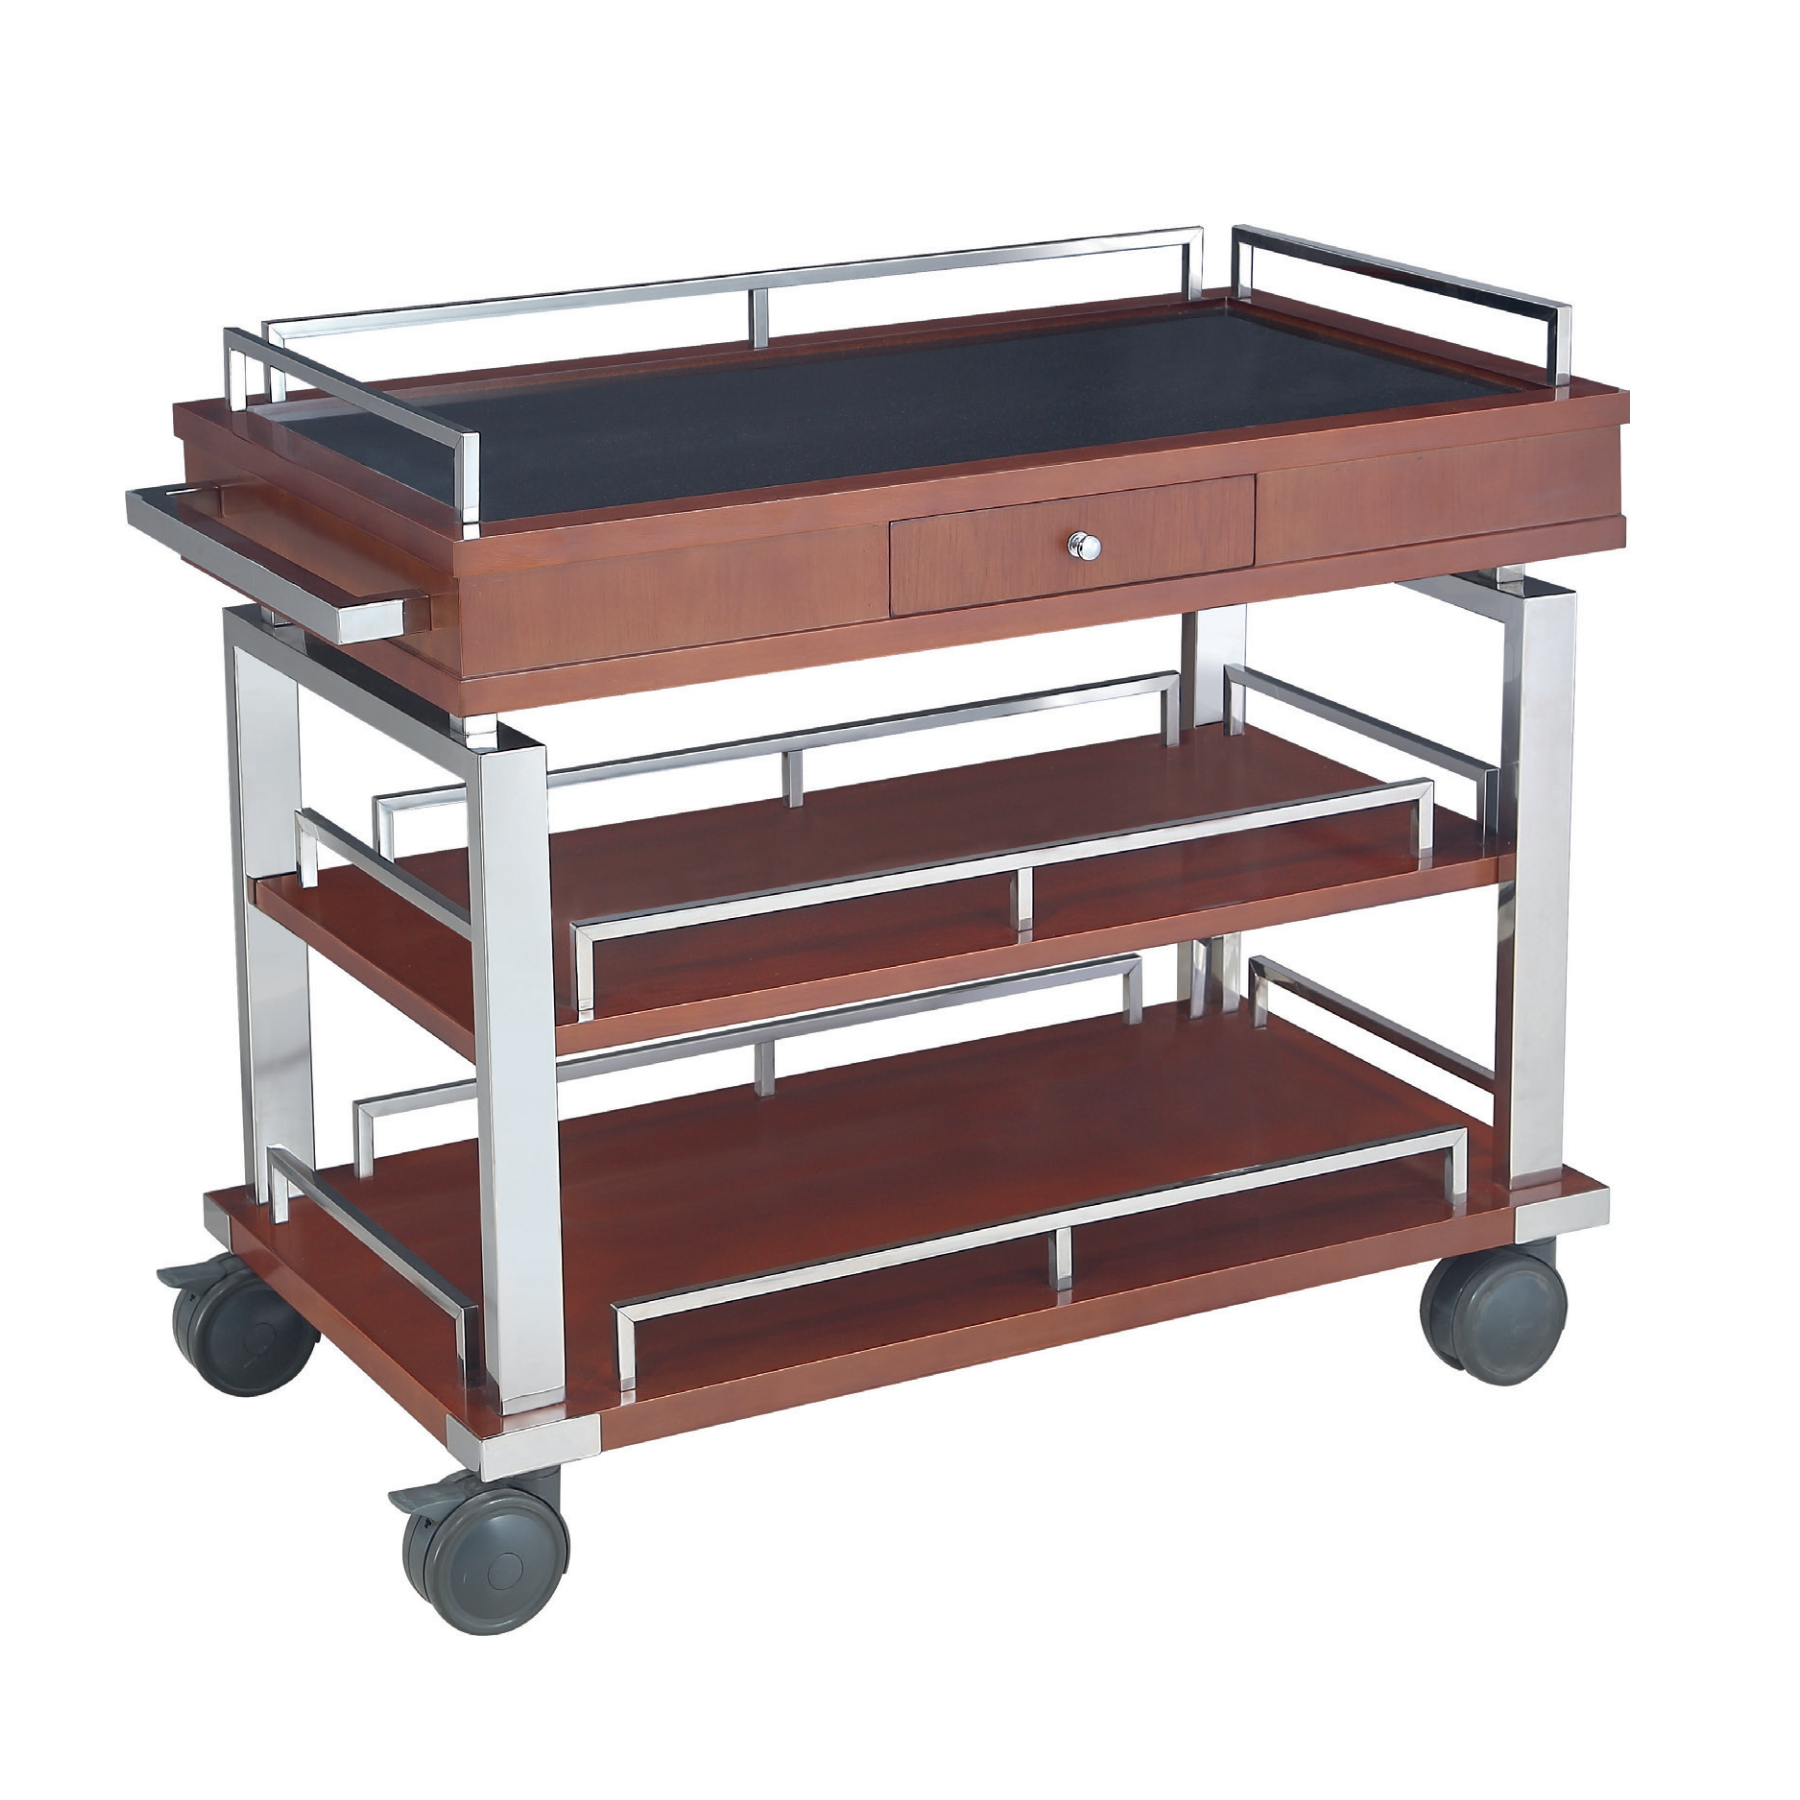 Hotel Service Flambe Trolley/ induction cooker trolley